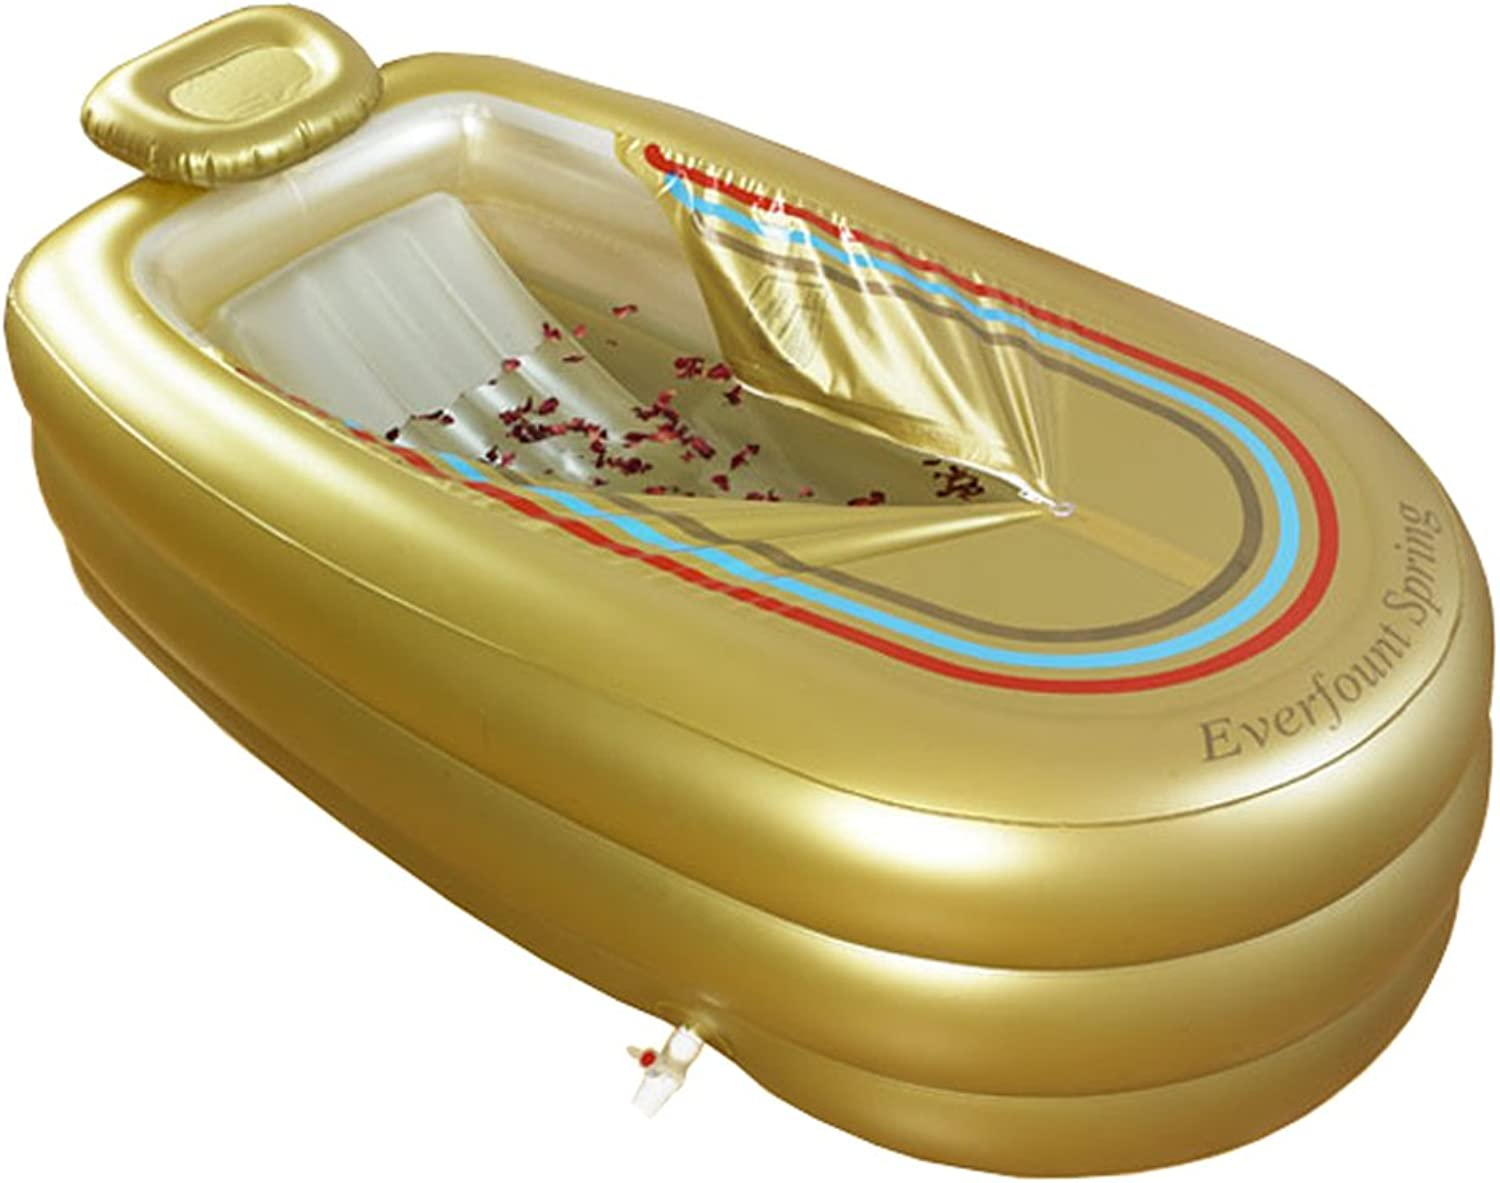 Bathtub XL Inflatable Plastic tub, Adult PVC Folding Bath Barrel Shower Bath, Portable, Soaking SPA Tub, with Eletric Pump, gold color, 168cm78cm45cm